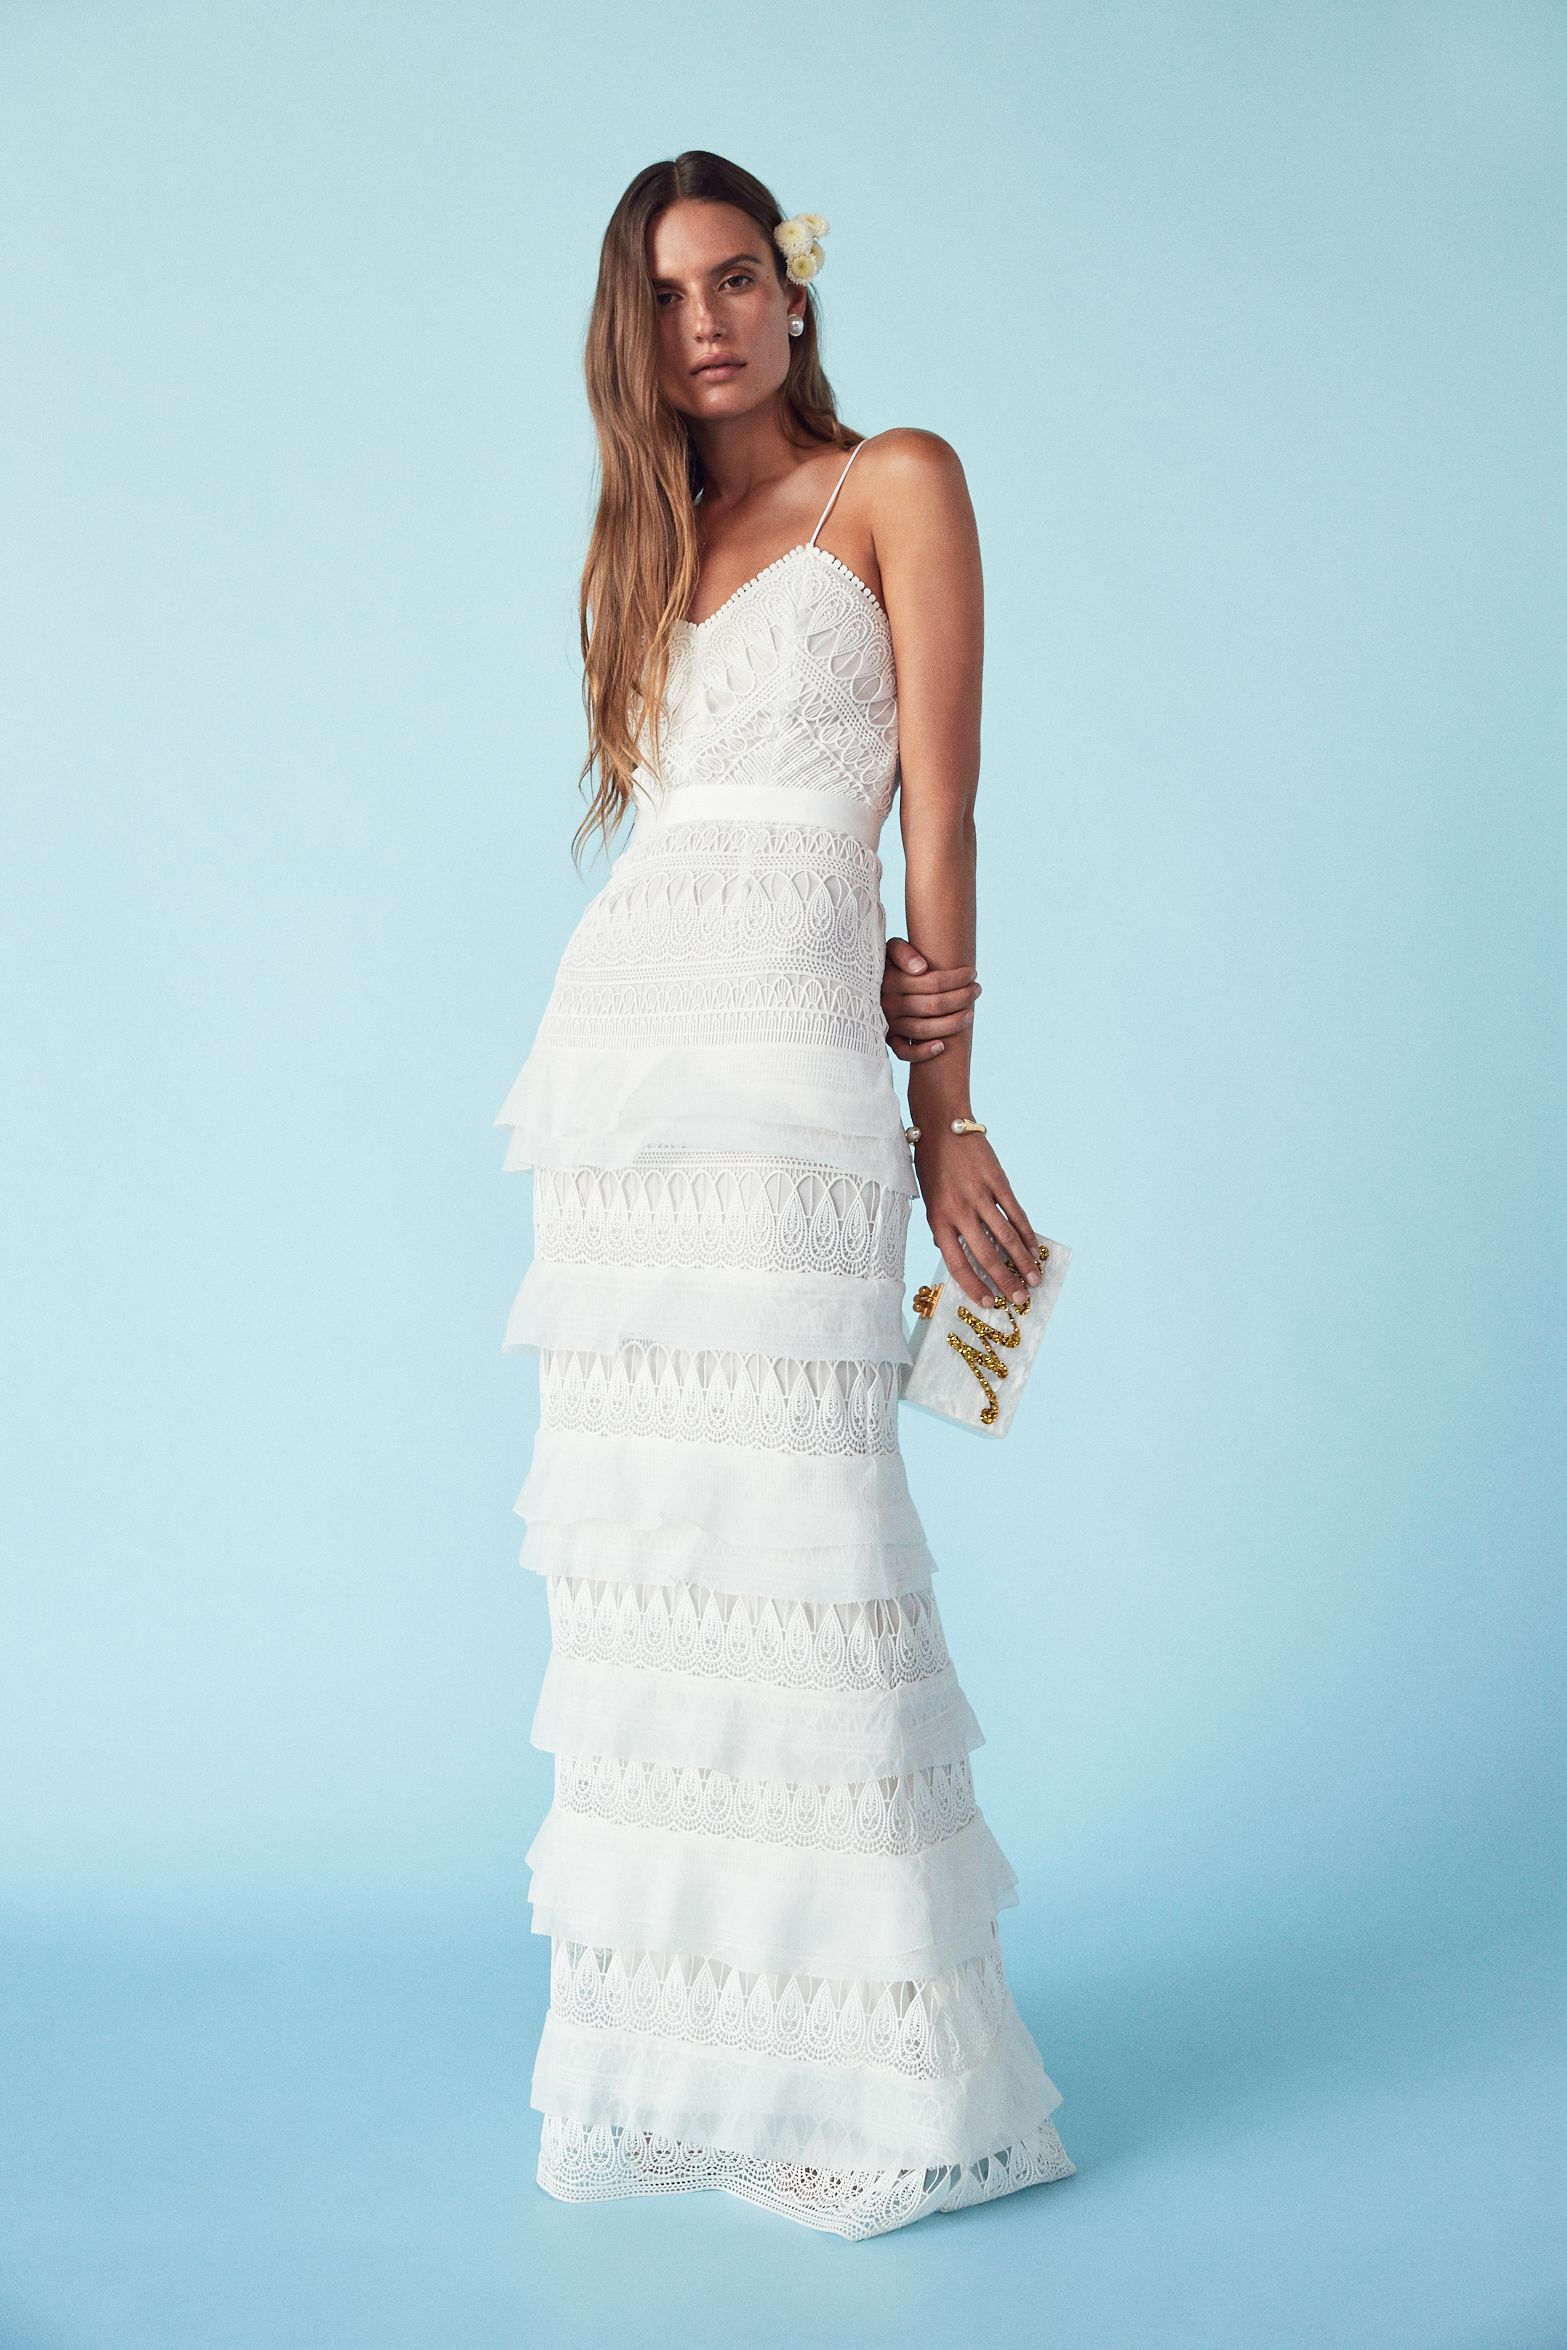 Forward by Elyse Walker Opens The Wedding Shop With Cool, Designer ...